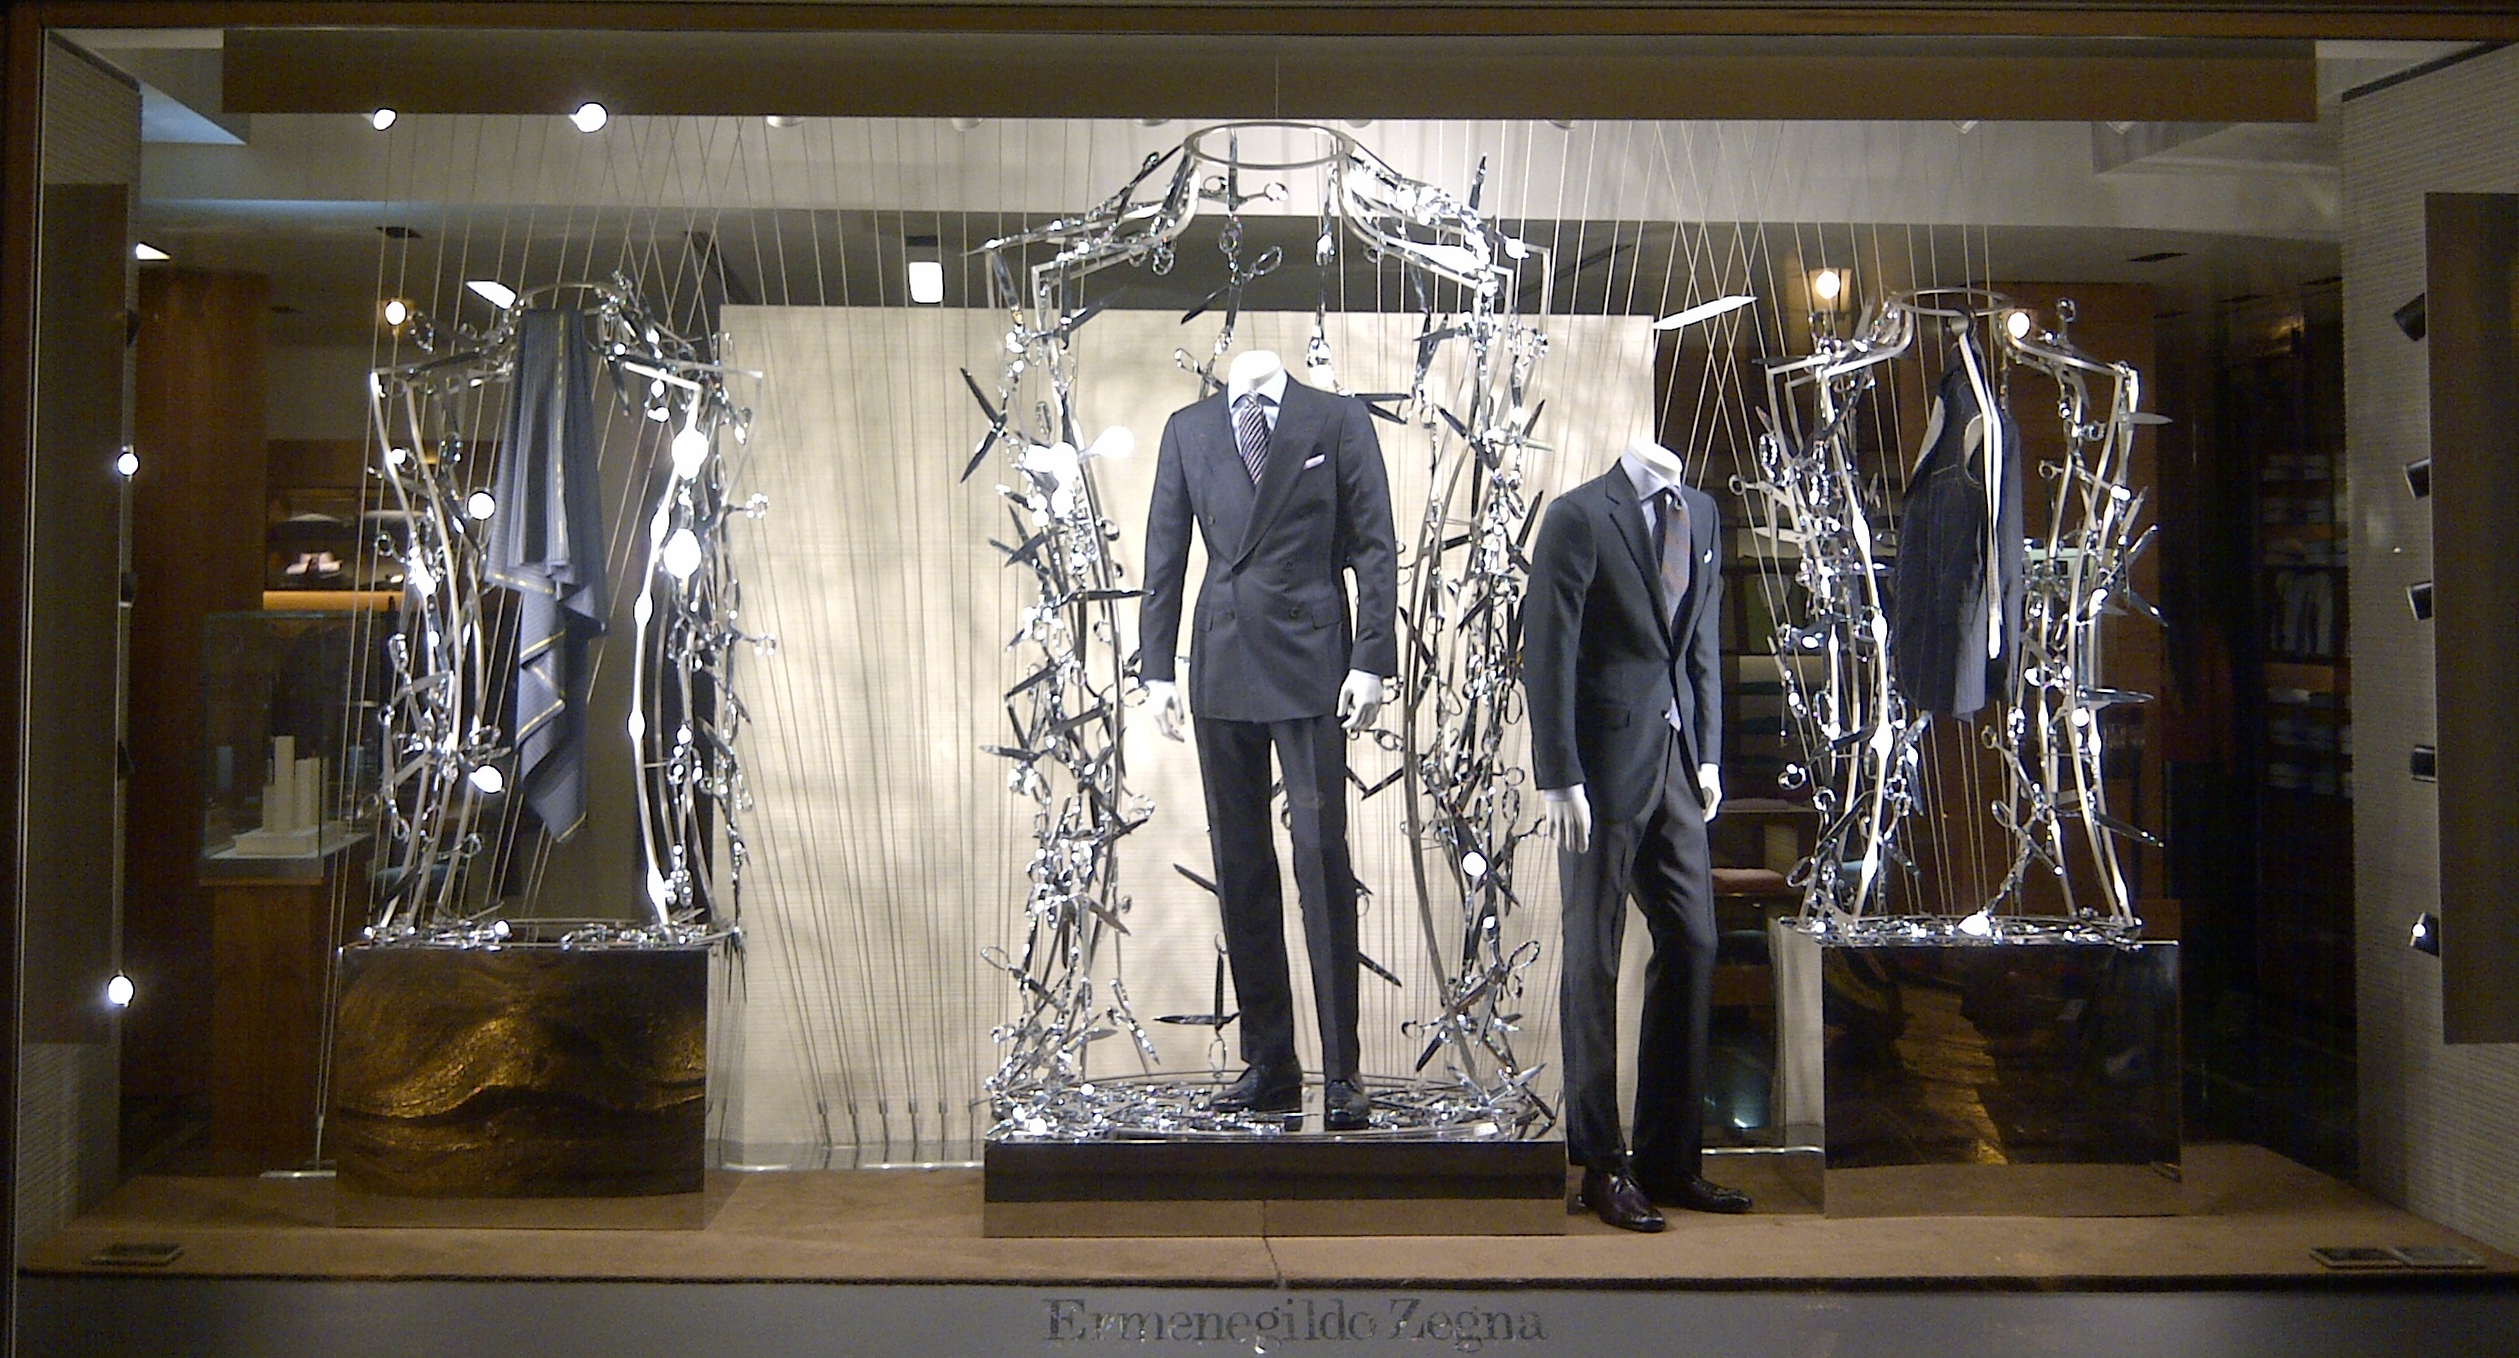 ermenegildo zegna fall winter 2011 made to measure garments. Black Bedroom Furniture Sets. Home Design Ideas